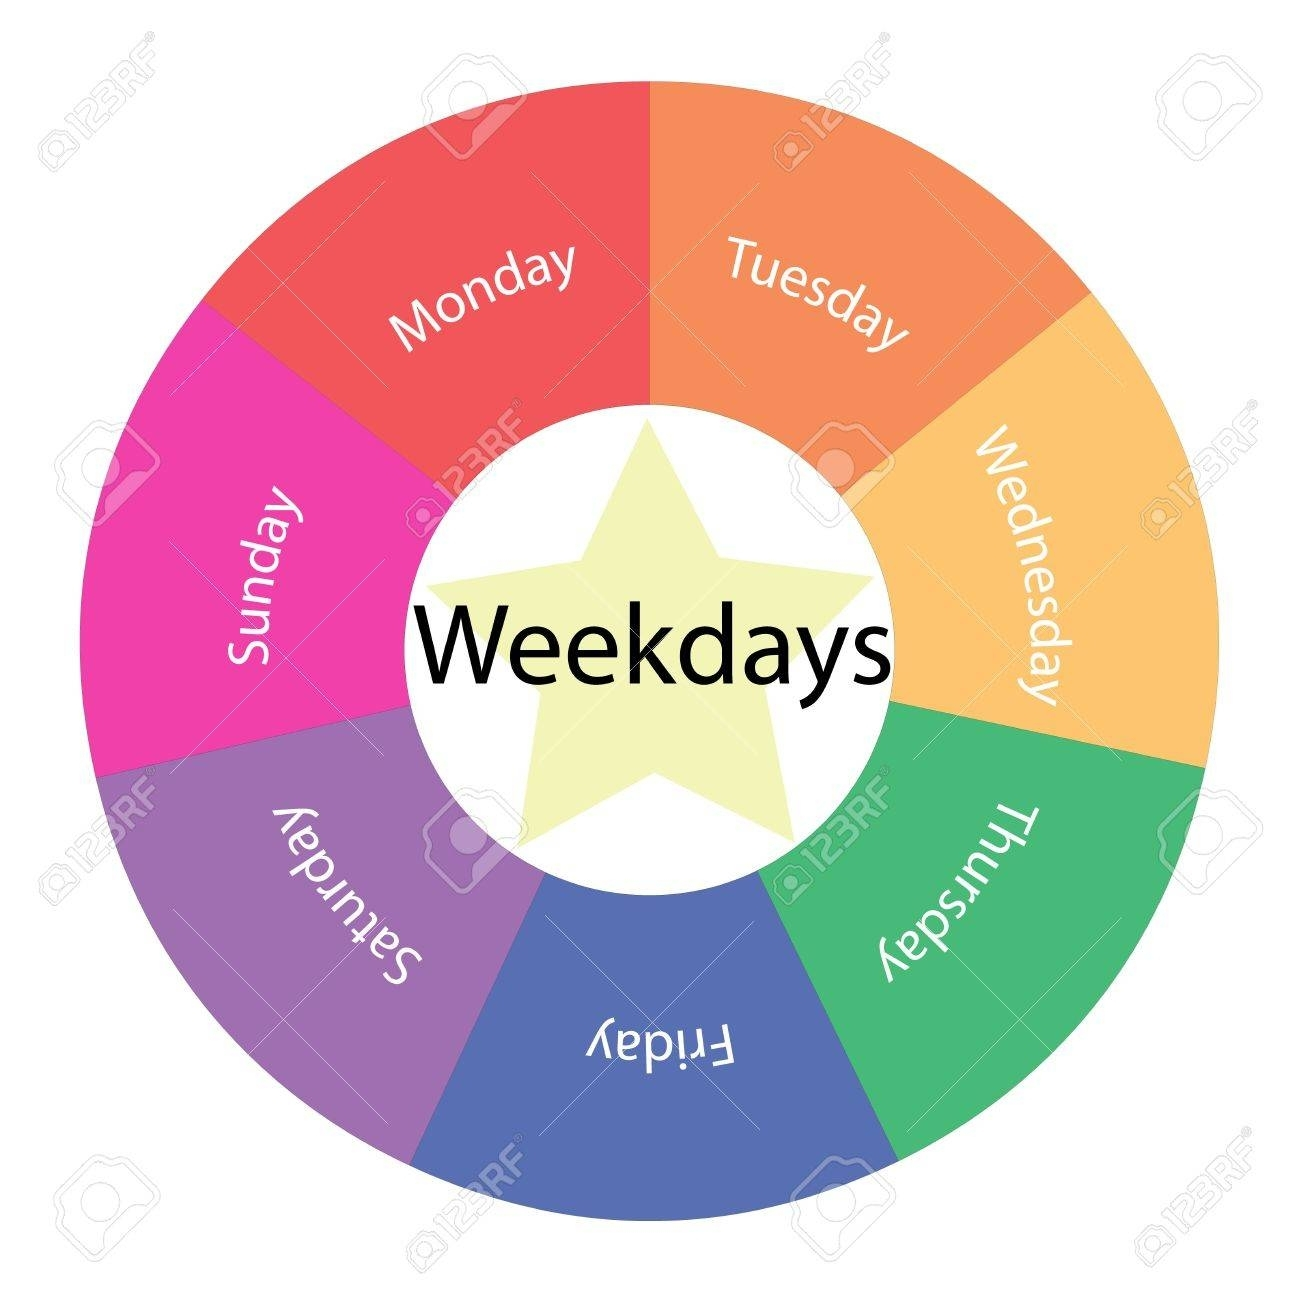 Weekdays Circular Concept With Great Terms Around The Center